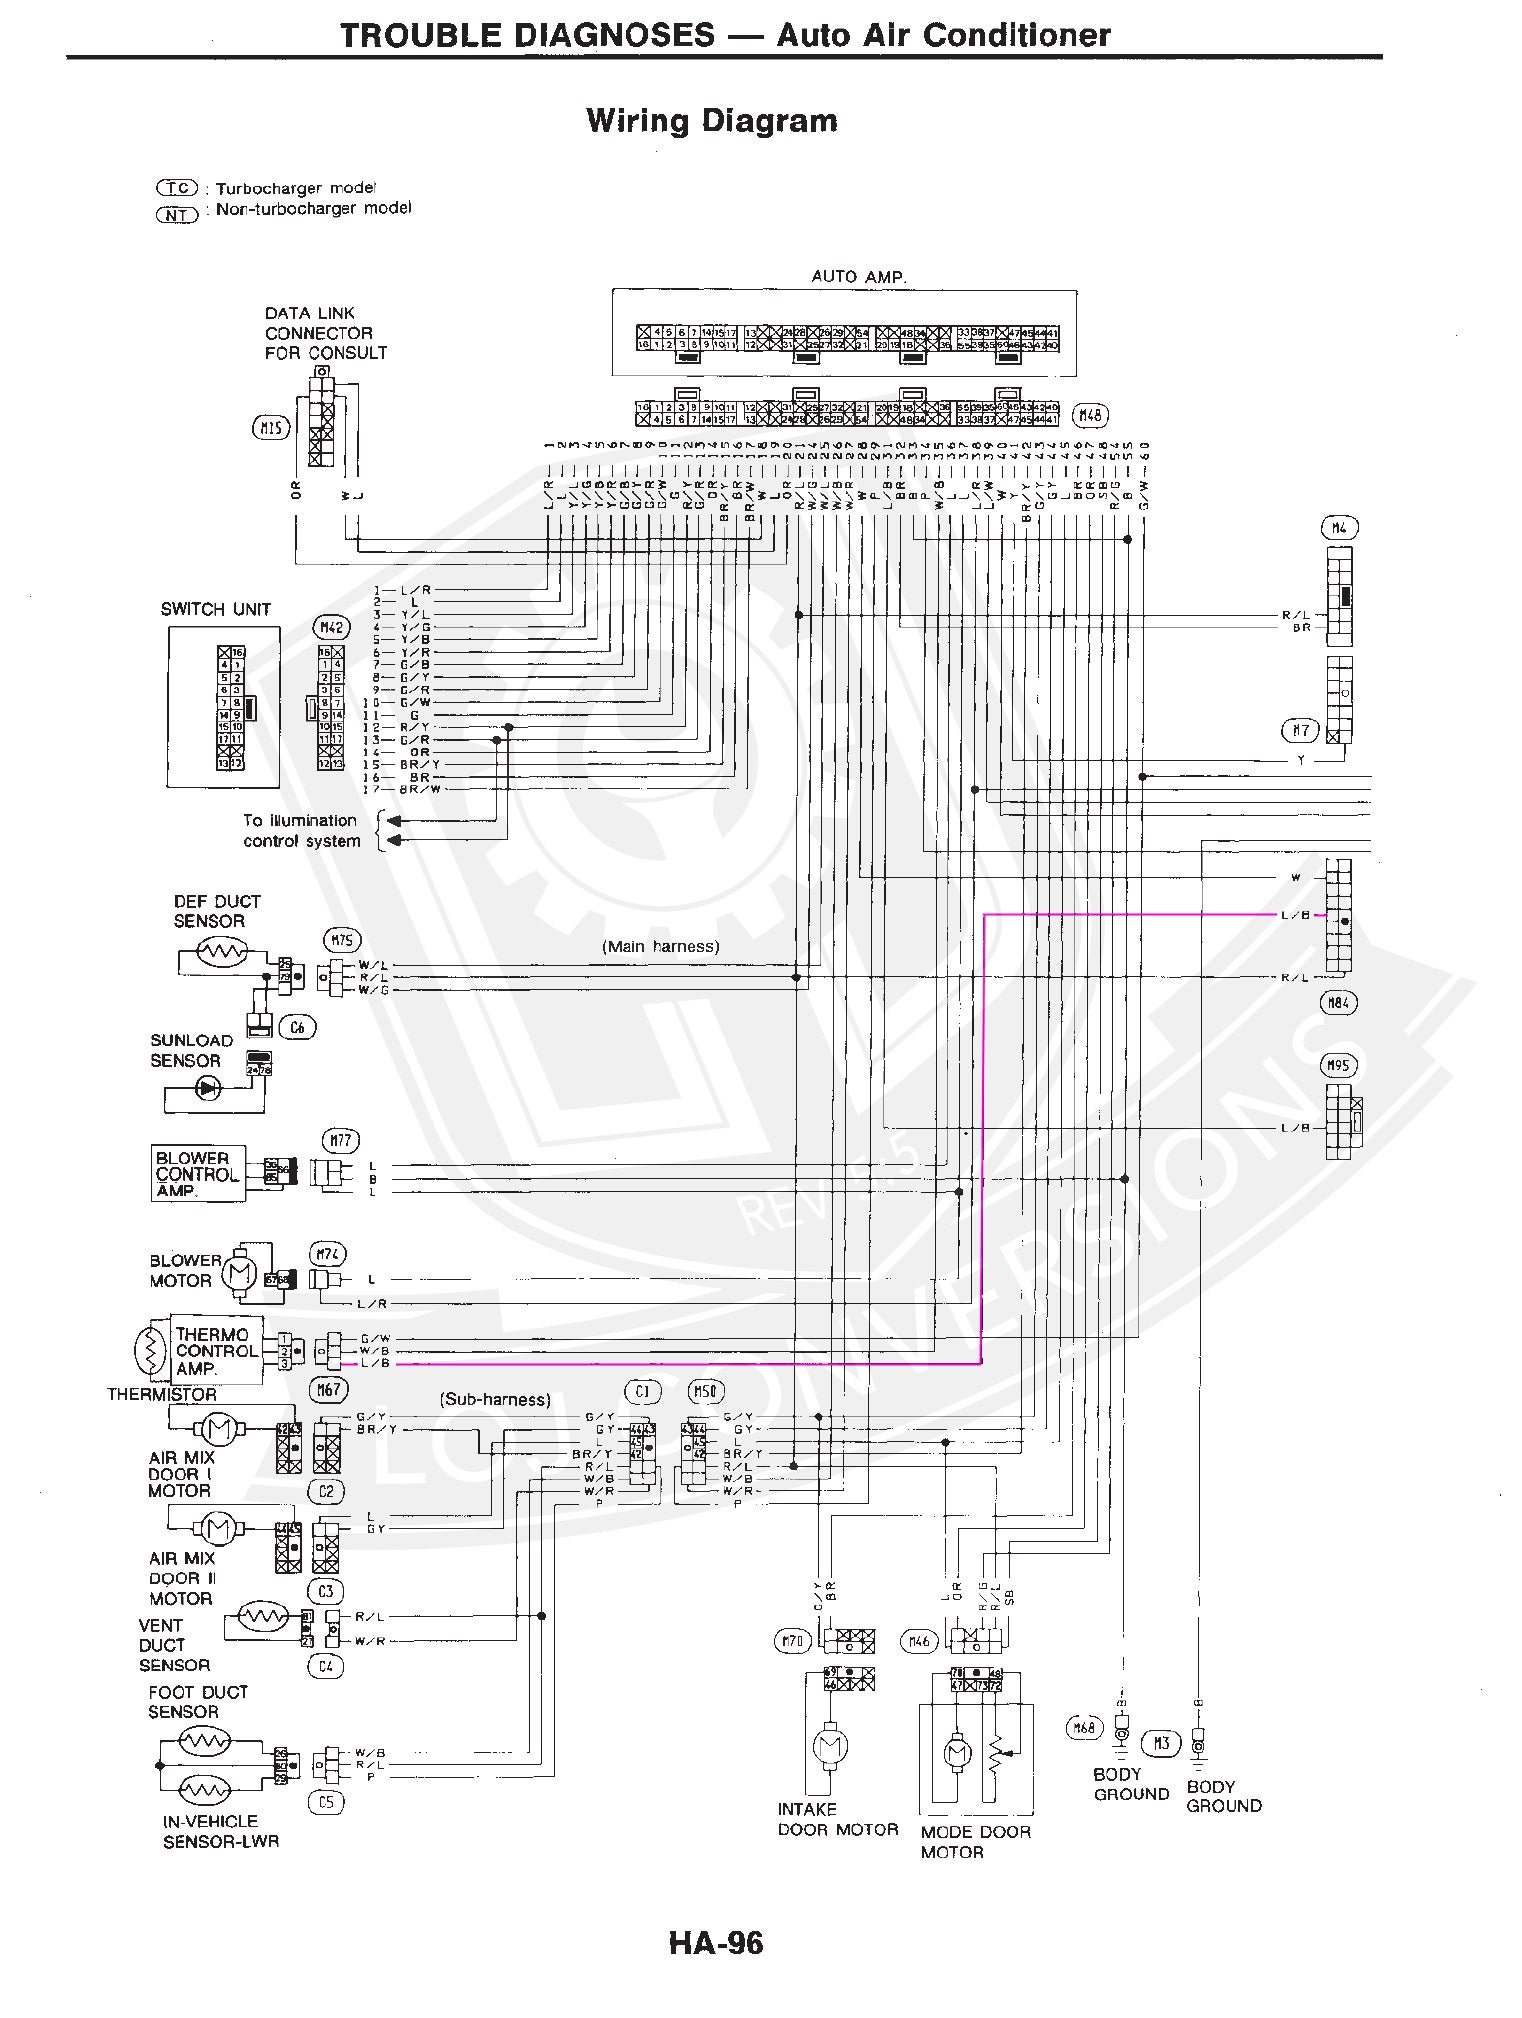 Infiniti Ac Wiring Diagrams Diy The In A 300zx Engine Conversion Loj Conversions Rh Lojkits Com G20 Cruise Control Diagram 2007 G35 Sedan